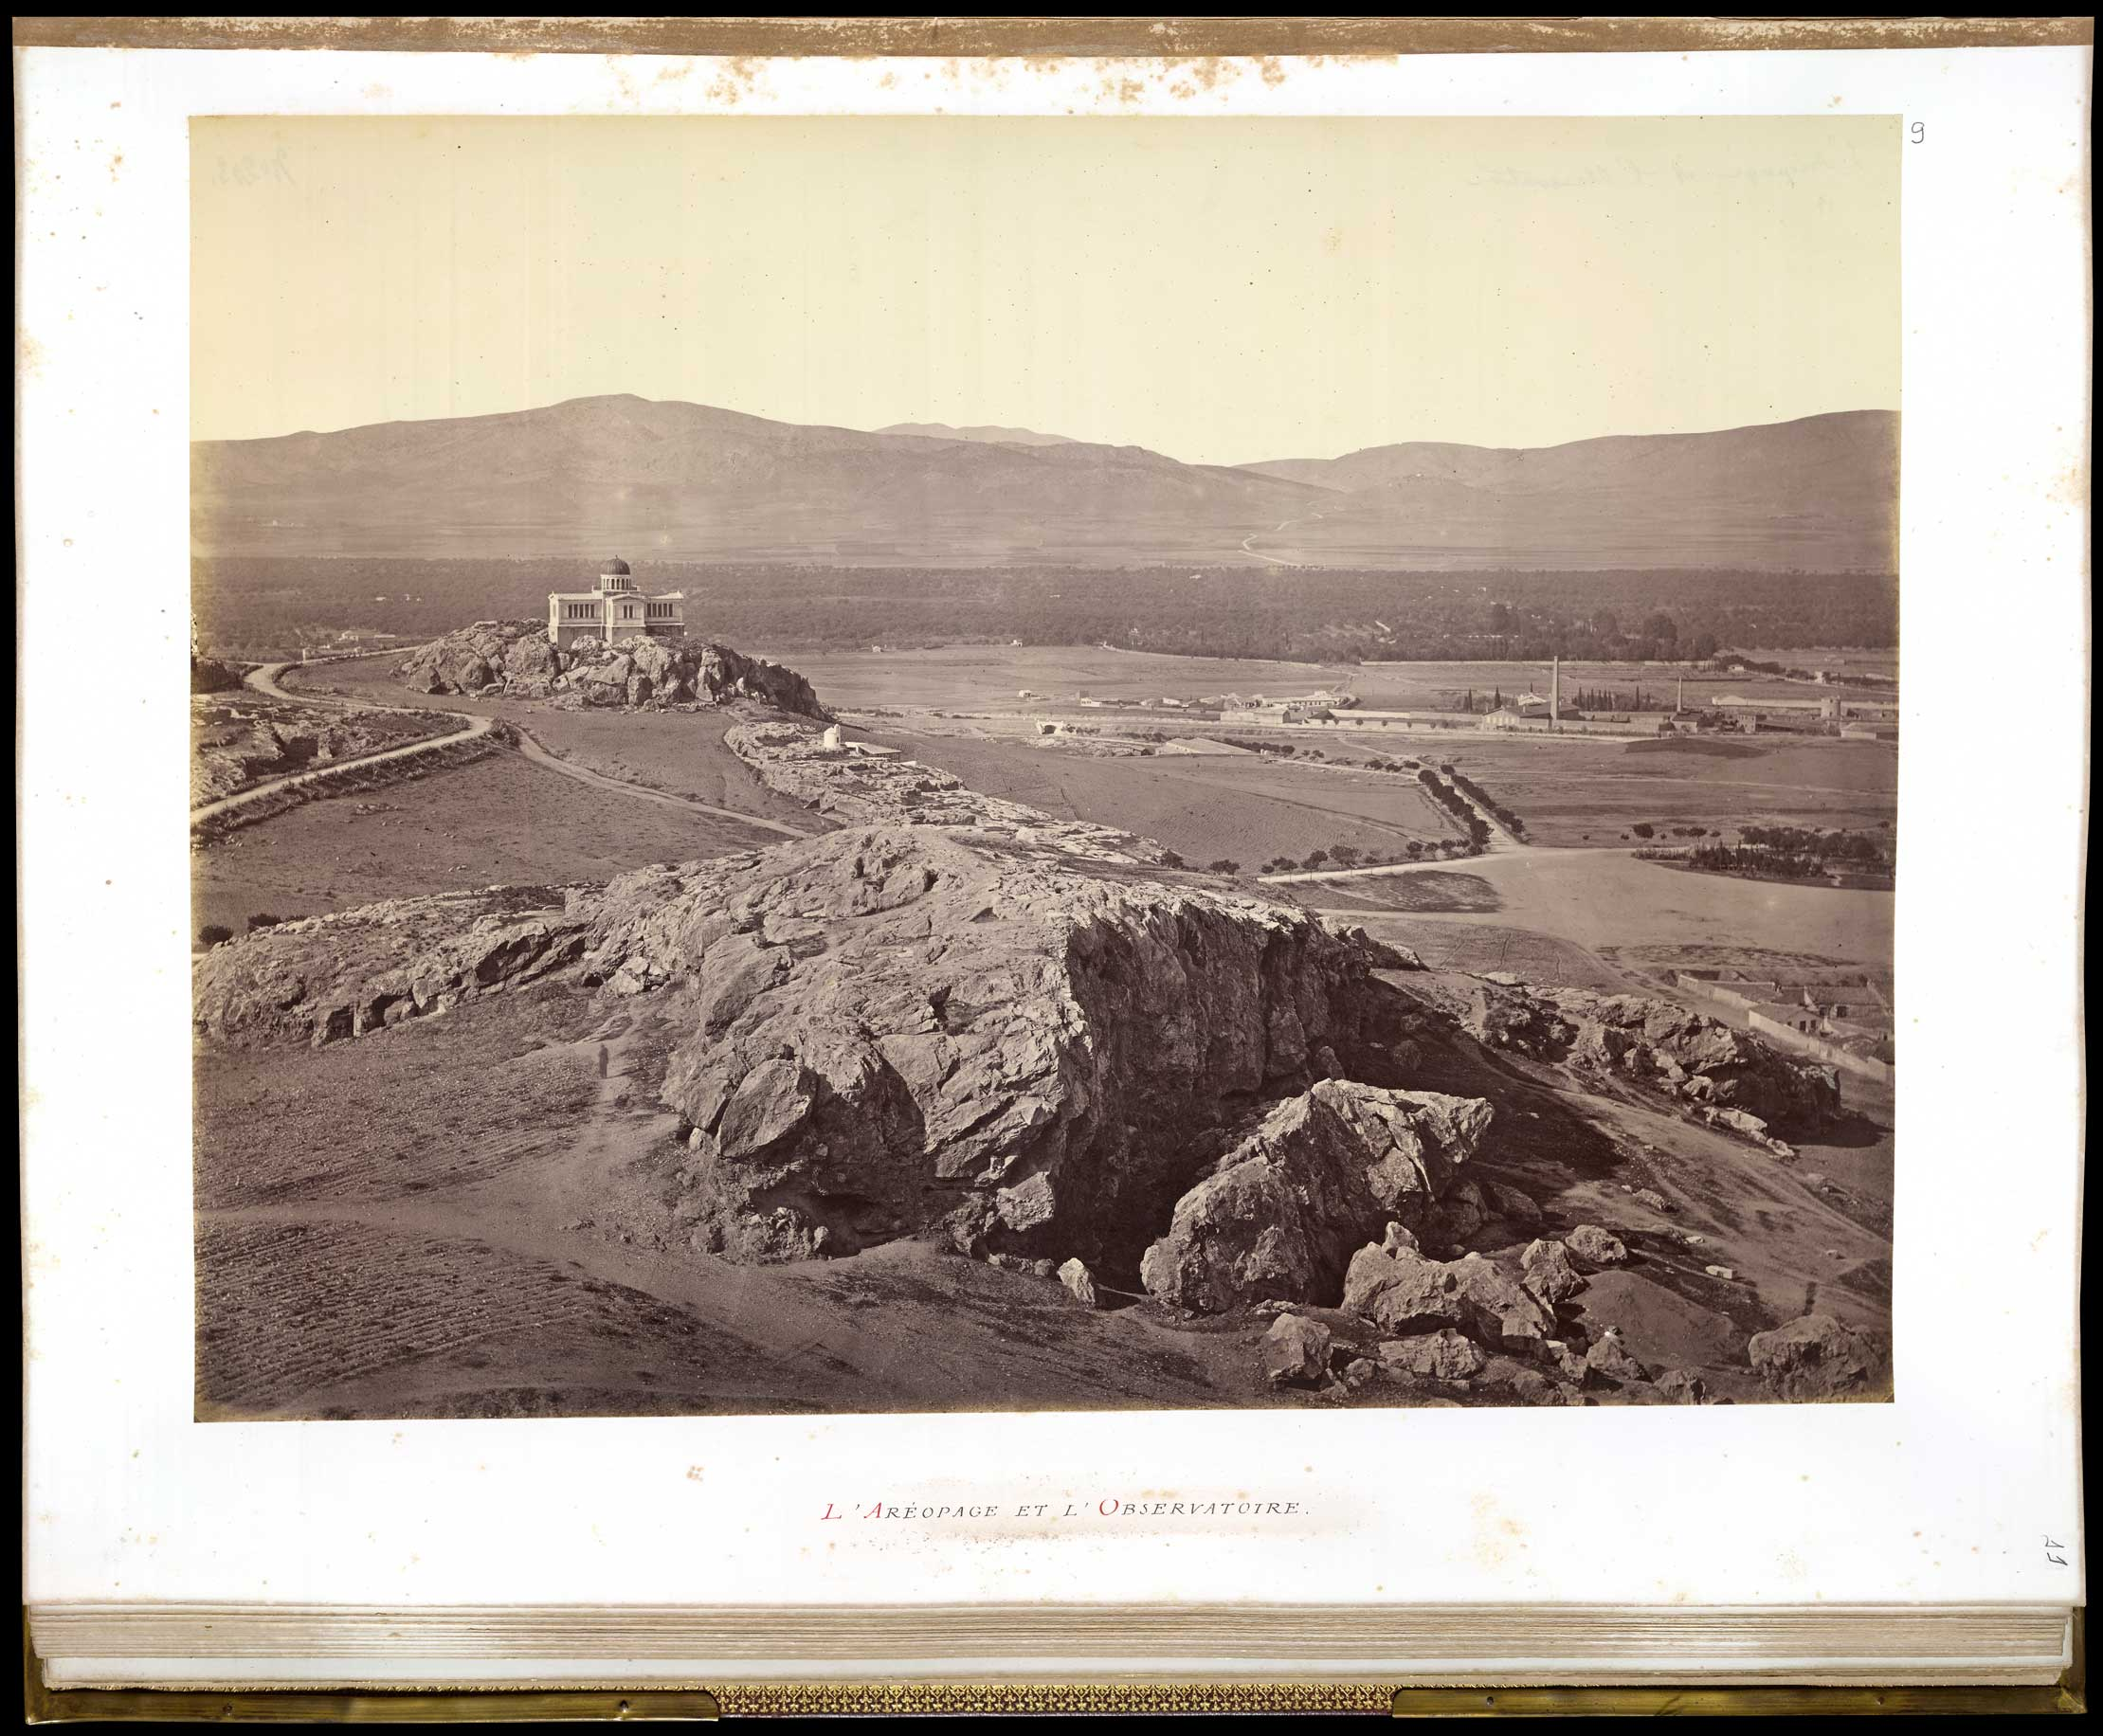 To the front, the Areopagus followed by the Archaic shrine of Zeus, along with the little church of Agia Marina and the Observatory to the far back (The Brazilian National Library [BN]).